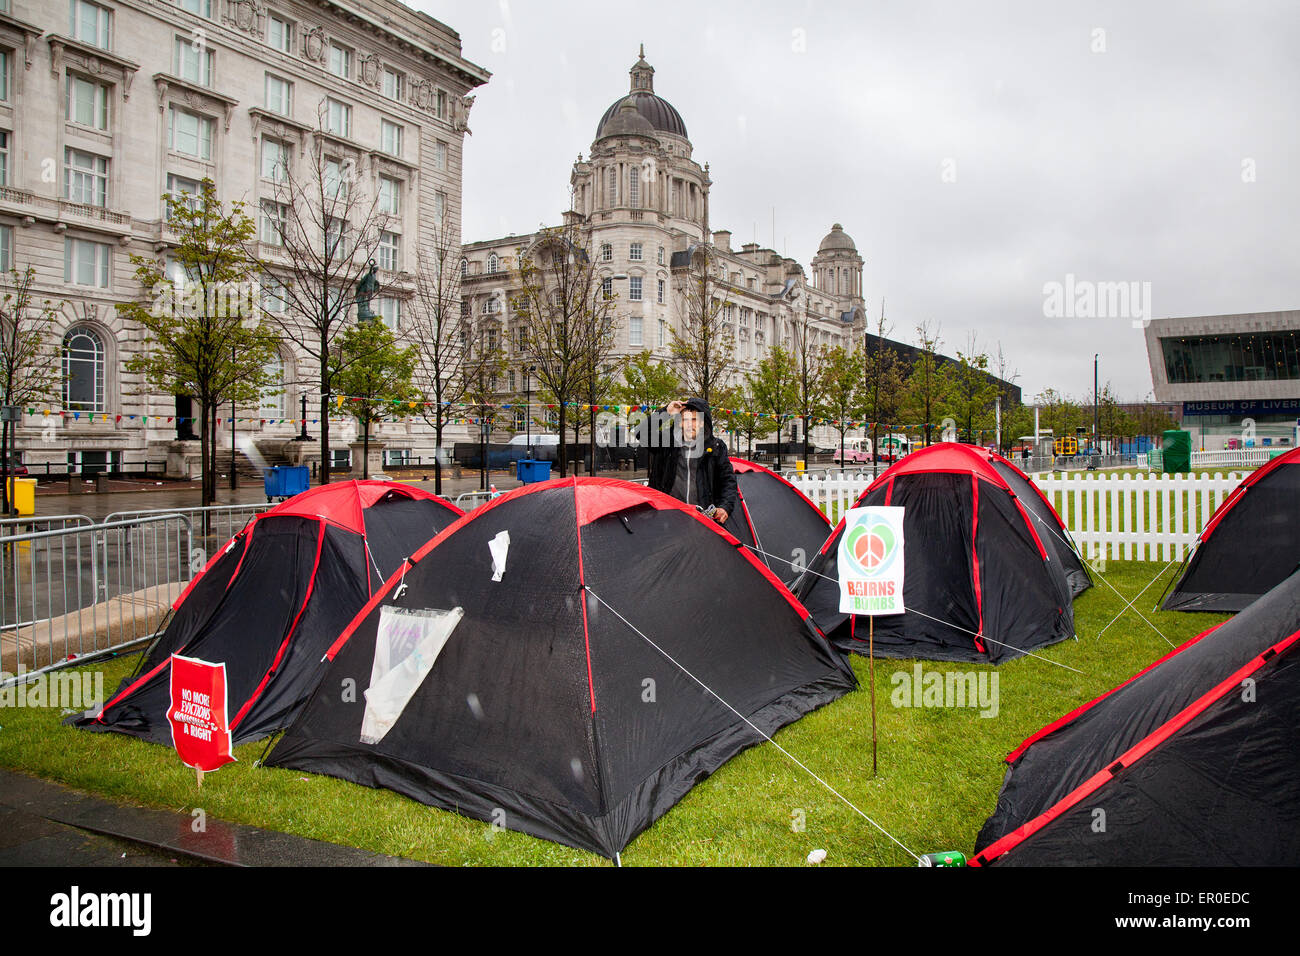 Liverpool, Merseyside, UK 24th May, 2015. The Love Activists for the homeless, who occupied the Bank of England - Stock Image